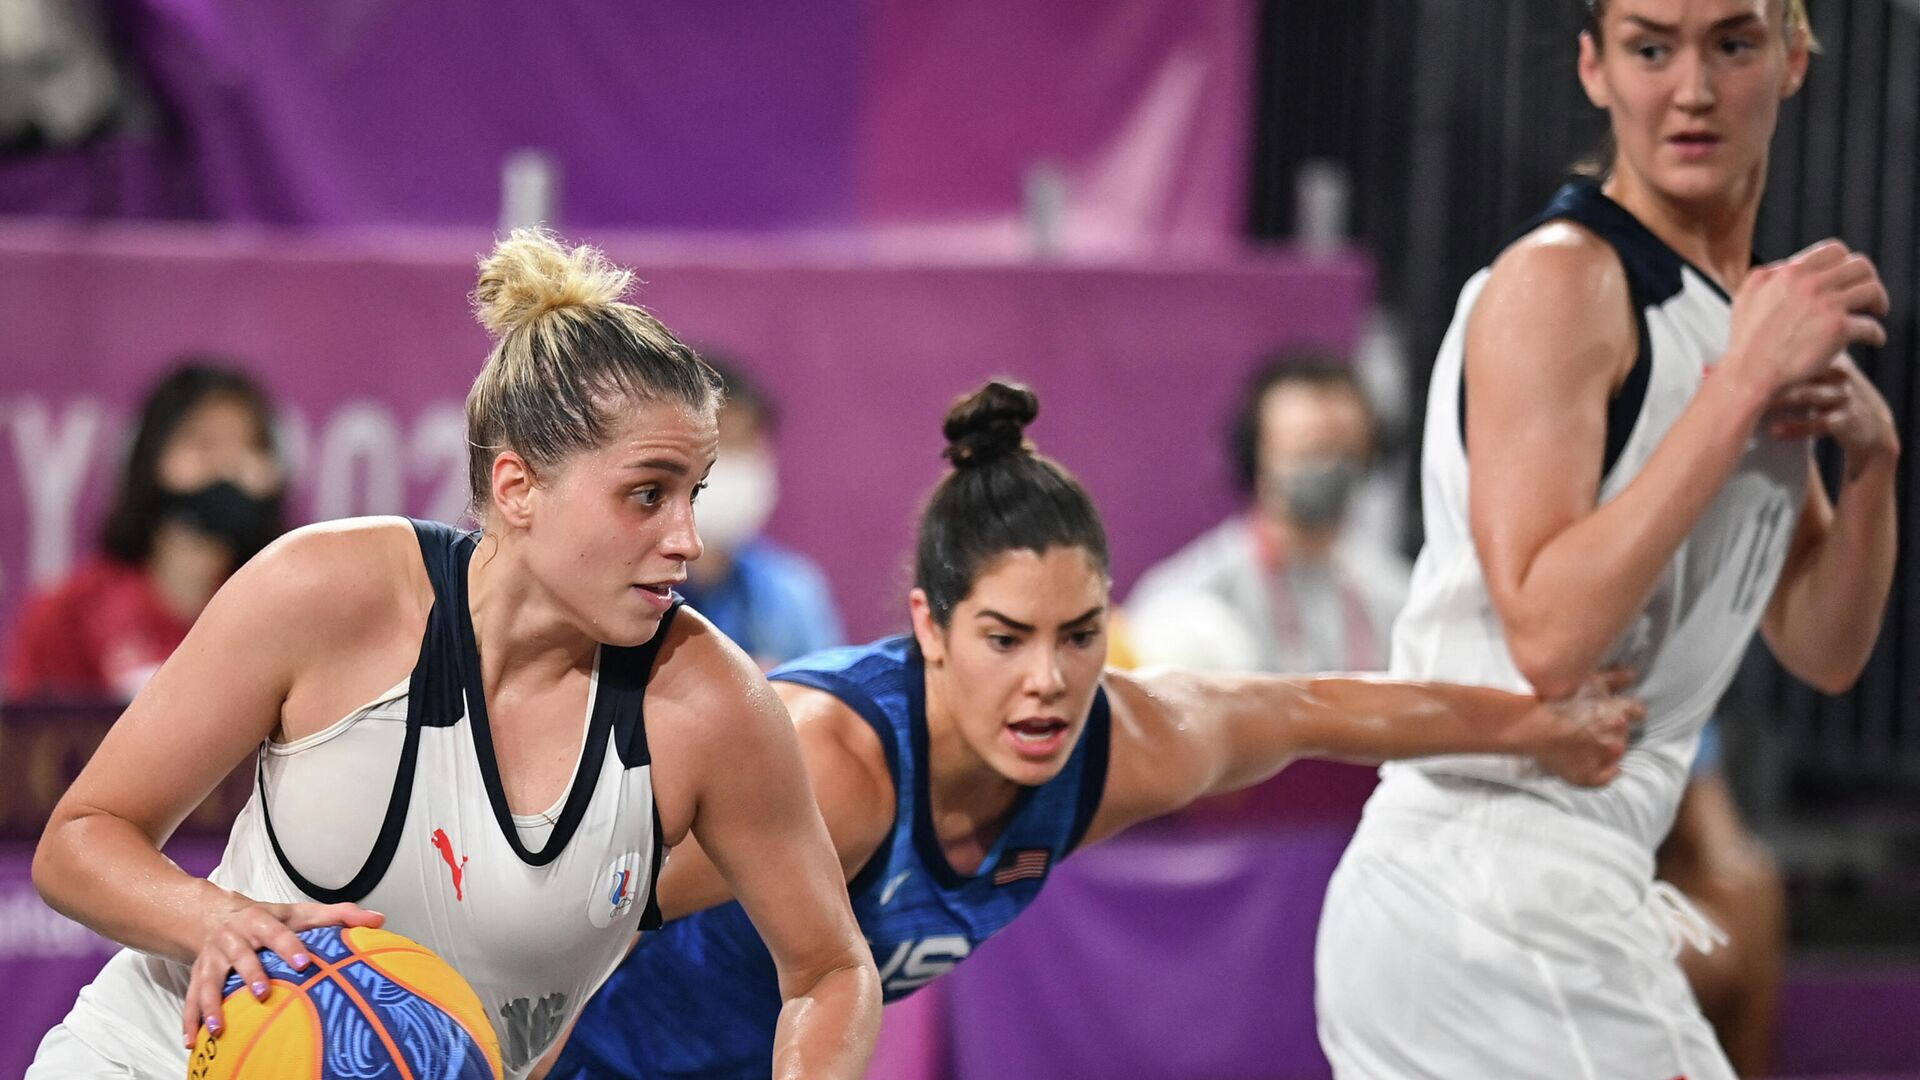 Russia's Evgeniia Frolkina (L) runs with the ball as she is tackled by USA's Kelsey Plum (C) next to Russia's Anastasiia Logunova (R) during the women's first round 3x3 basketball match between Russia and US at the Aomi Urban Sports Park in Tokyo, on July 25, 2021 during the Tokyo 2020 Olympic Games. (Photo by Andrej ISAKOVIC / AFP) - РИА Новости, 1920, 25.07.2021